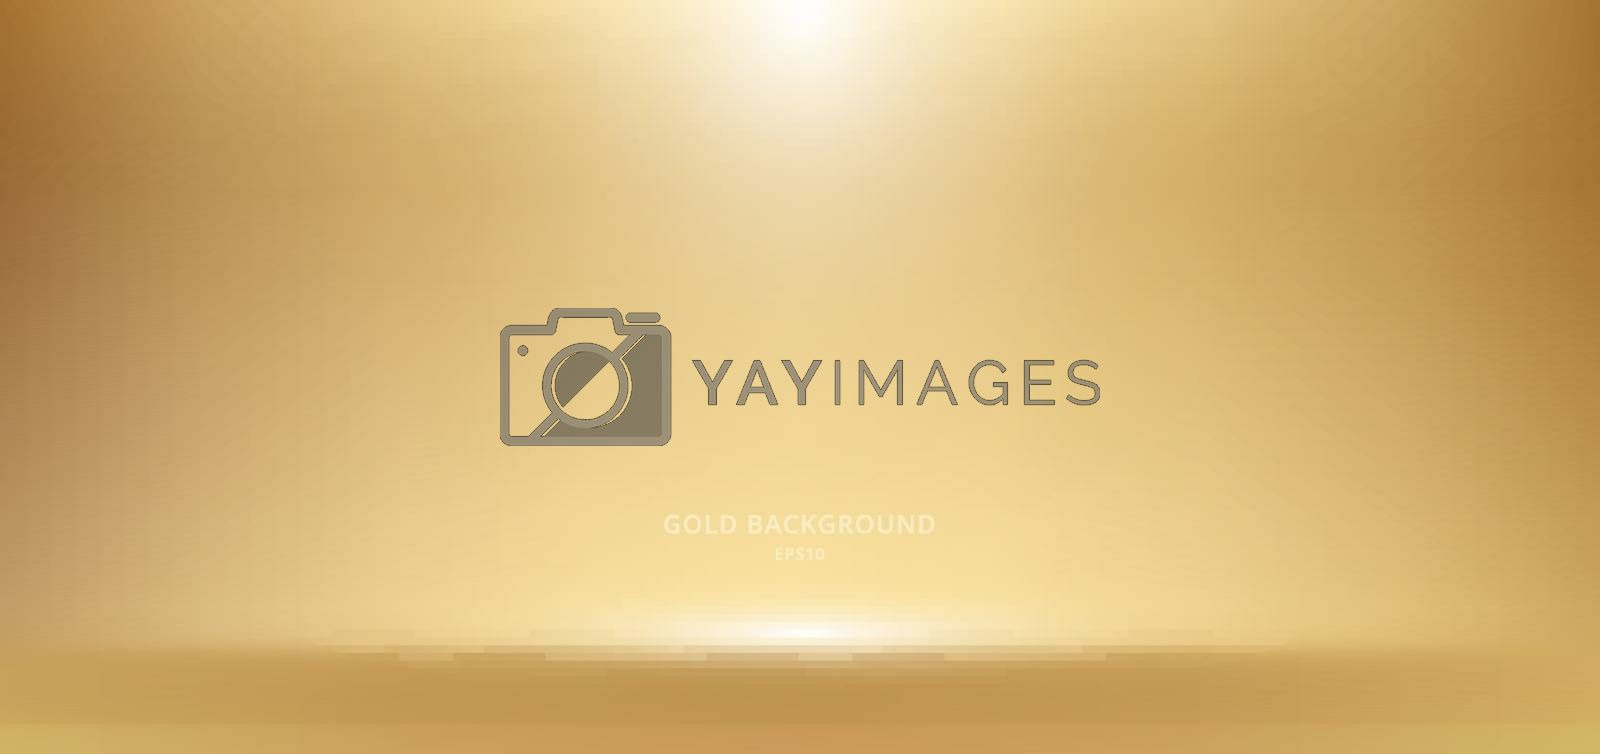 3D empty golden studio room background with spotlight on stage background. Display your product or artwork luxury style. Vector illustration